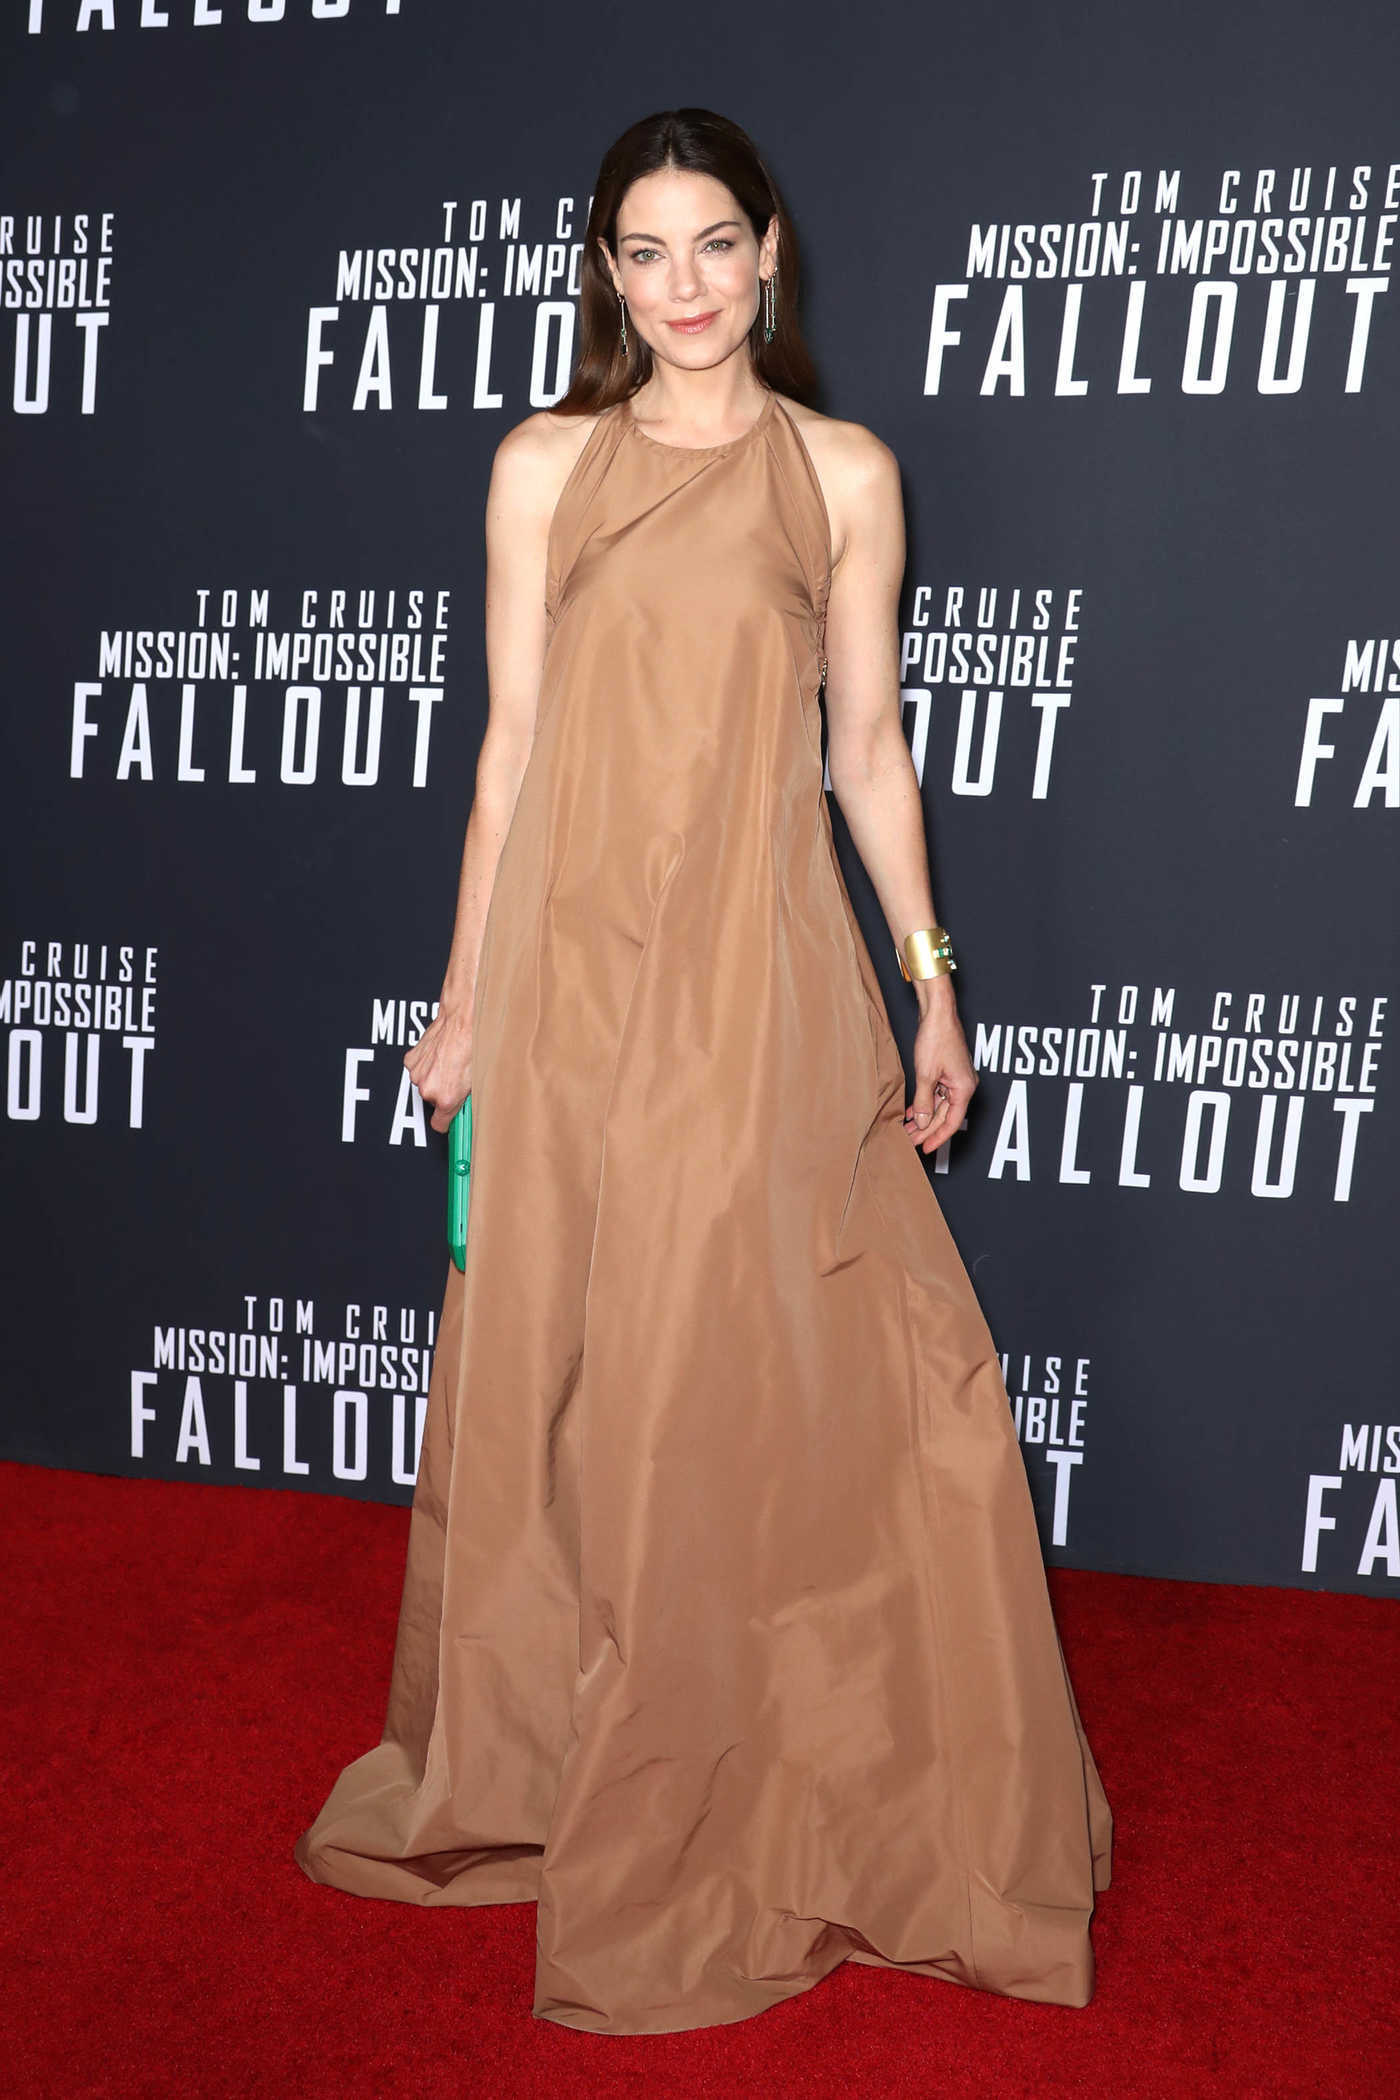 Michelle Monaghan Attends the Mission Impossible: Fallout Premiere in Washington 07/22/2018